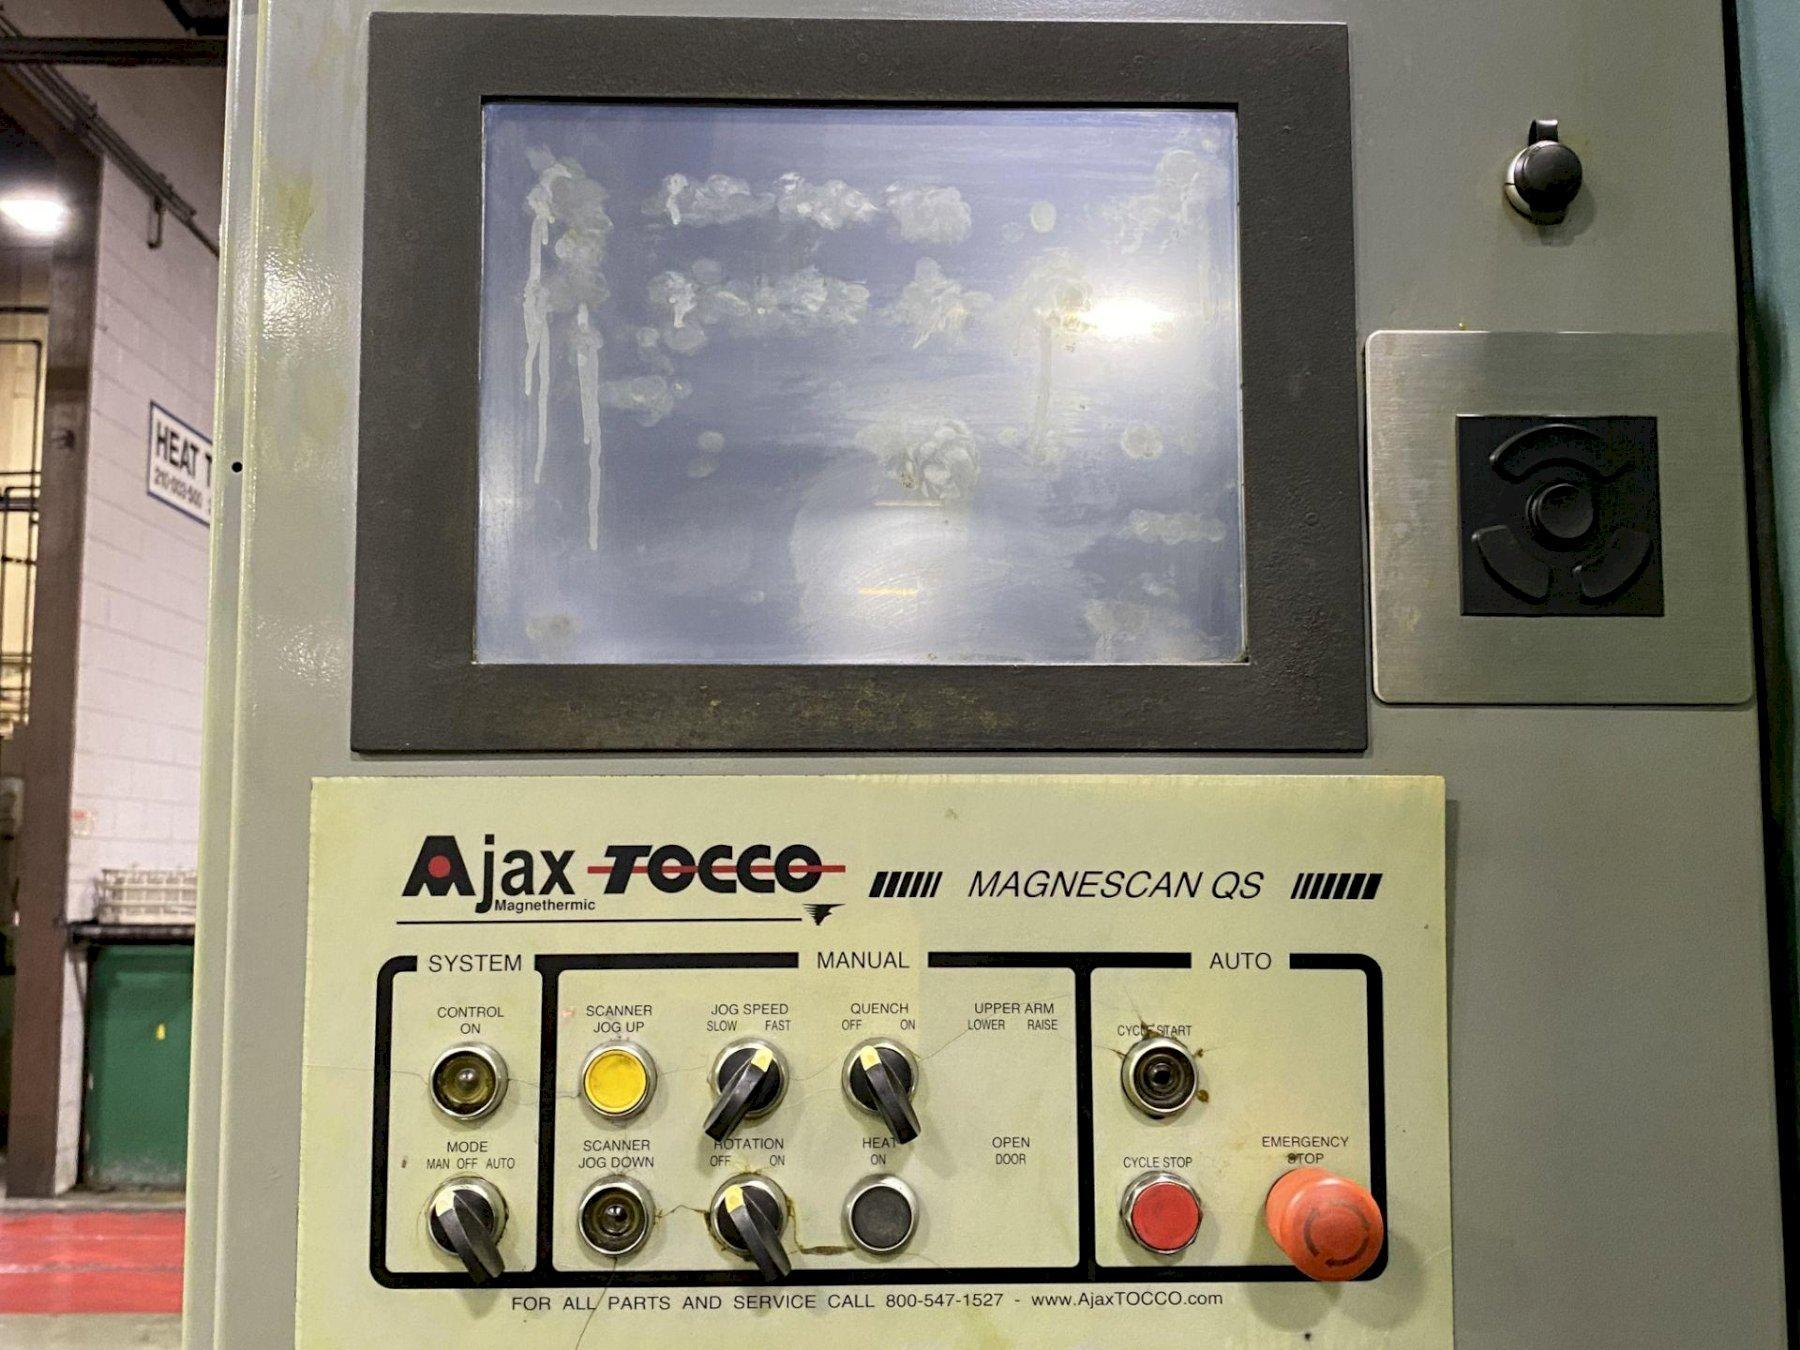 AJAX TOCCO DUAL HEAD HARNESS SCANNER WITH AJAC PACER POWER SUPPLY: STOCK #14289